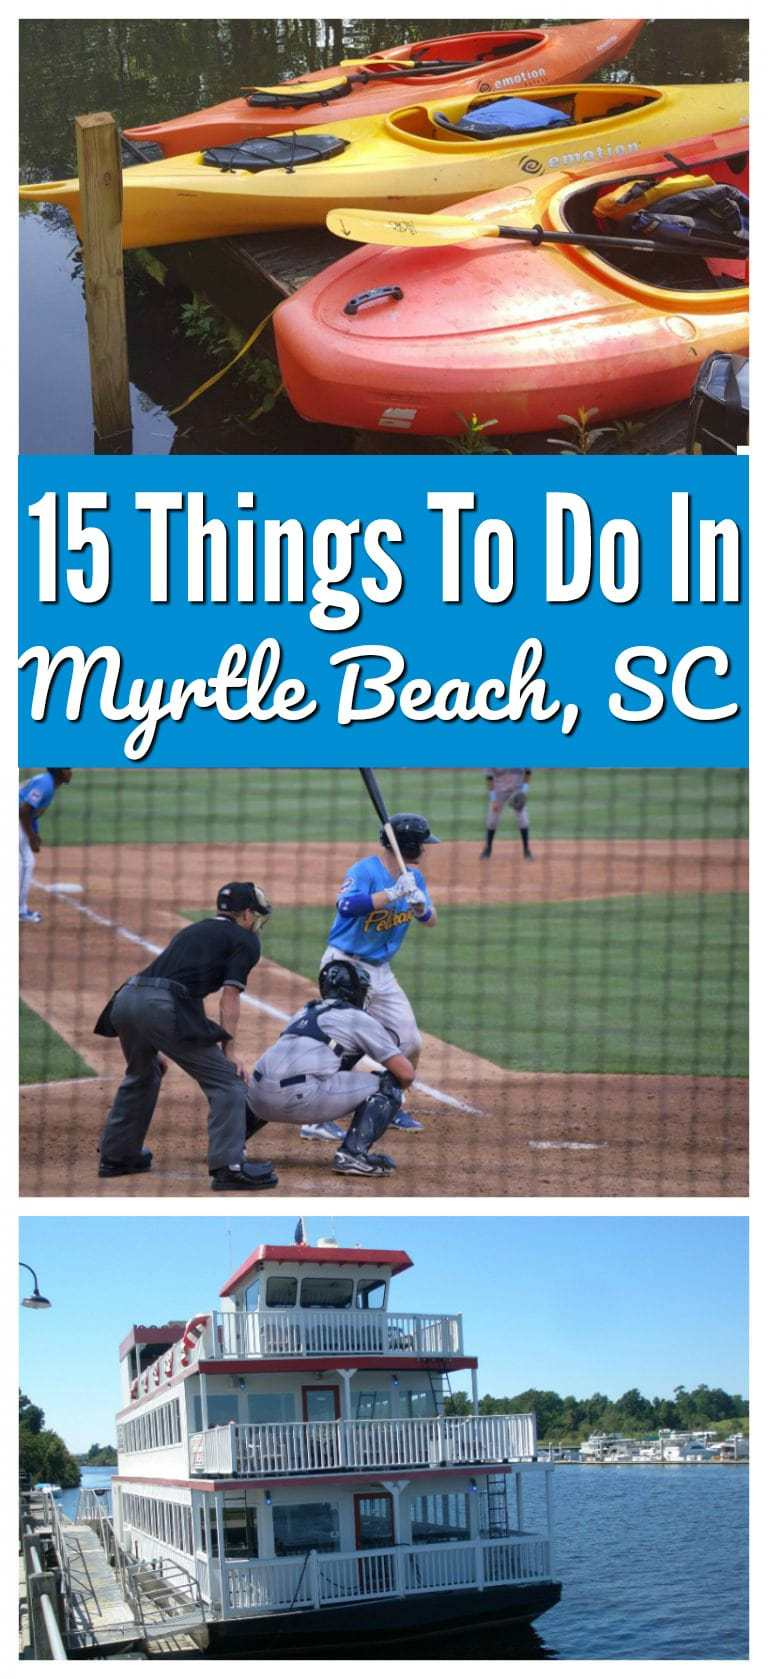 Myrtle Beach is more than just a place to catch some rays. It's a family destination that is jam-packed with great attractions. Whether your family loves baseball, a riverboat, kayaking, or music, there's something for everyone. @MyMyrtleBeach #visitmyrtlebeach #MyrtleBeach https://www.lifefamilyfun.com/things-to-do-myrtle-beach/